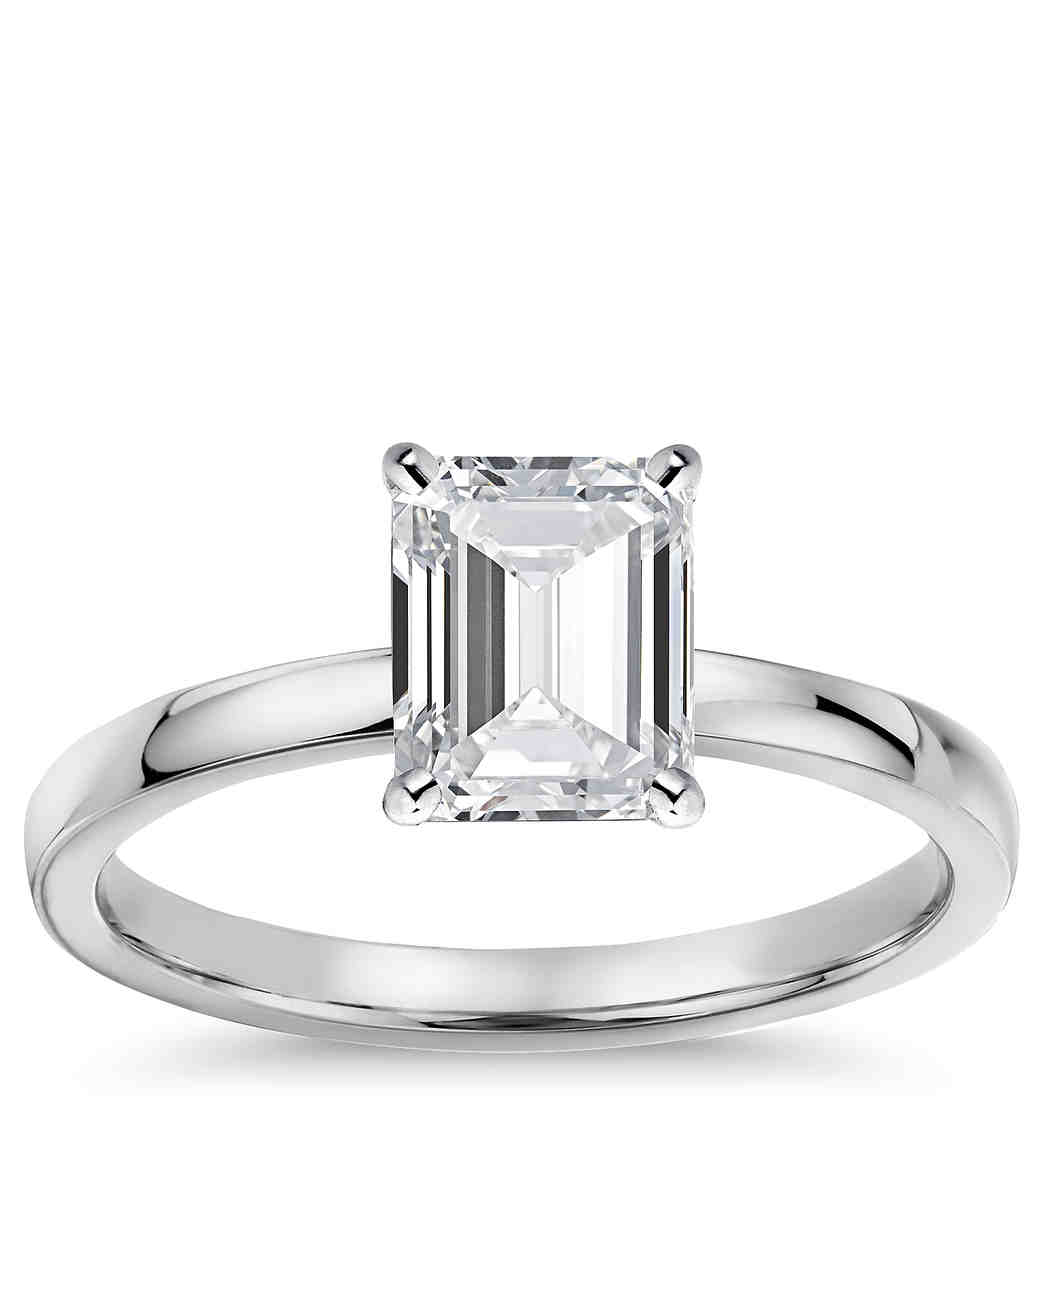 elegant emerald cut engagement rings martha stewart weddings. Black Bedroom Furniture Sets. Home Design Ideas